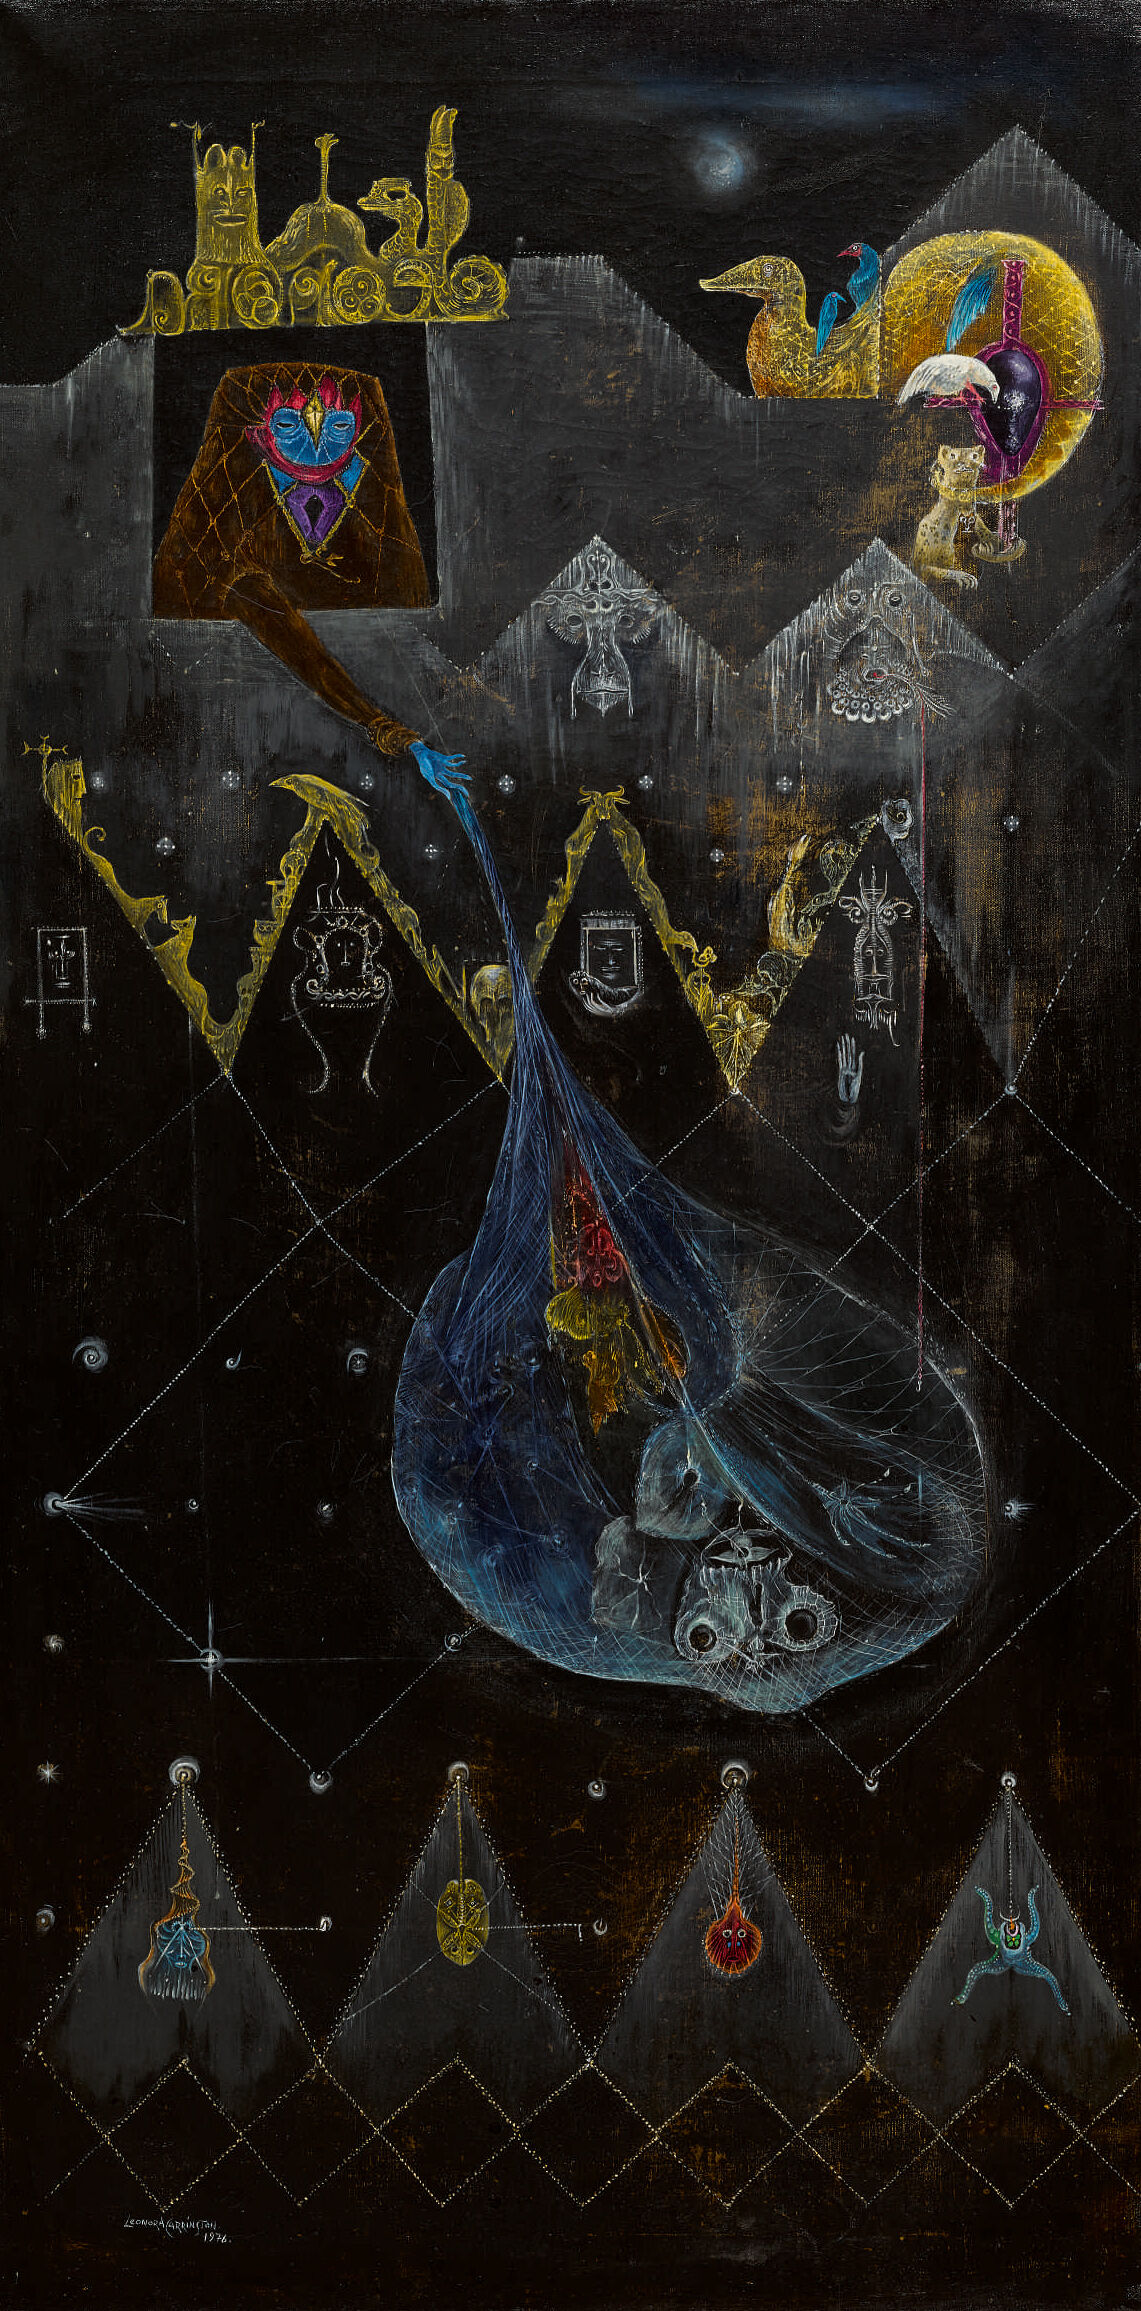 Leonora Carrington, The Dark Night of Aranoë, 1976. © 2018 Estate of Leonora Carrington / Artists Rights Society (ARS), New York. Courtesy of Sotheby's.